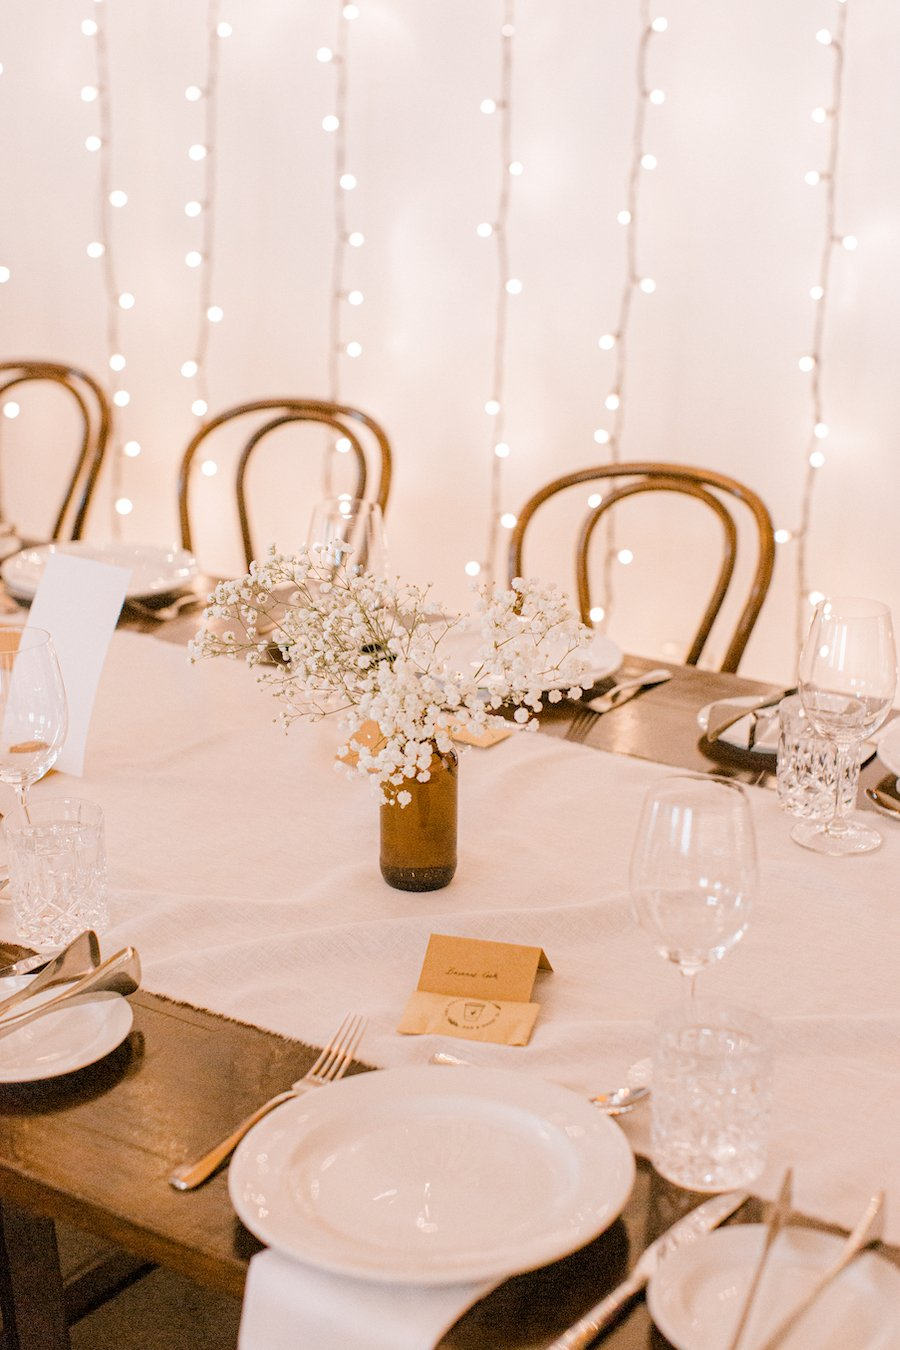 wedding table styling with white tablecloth